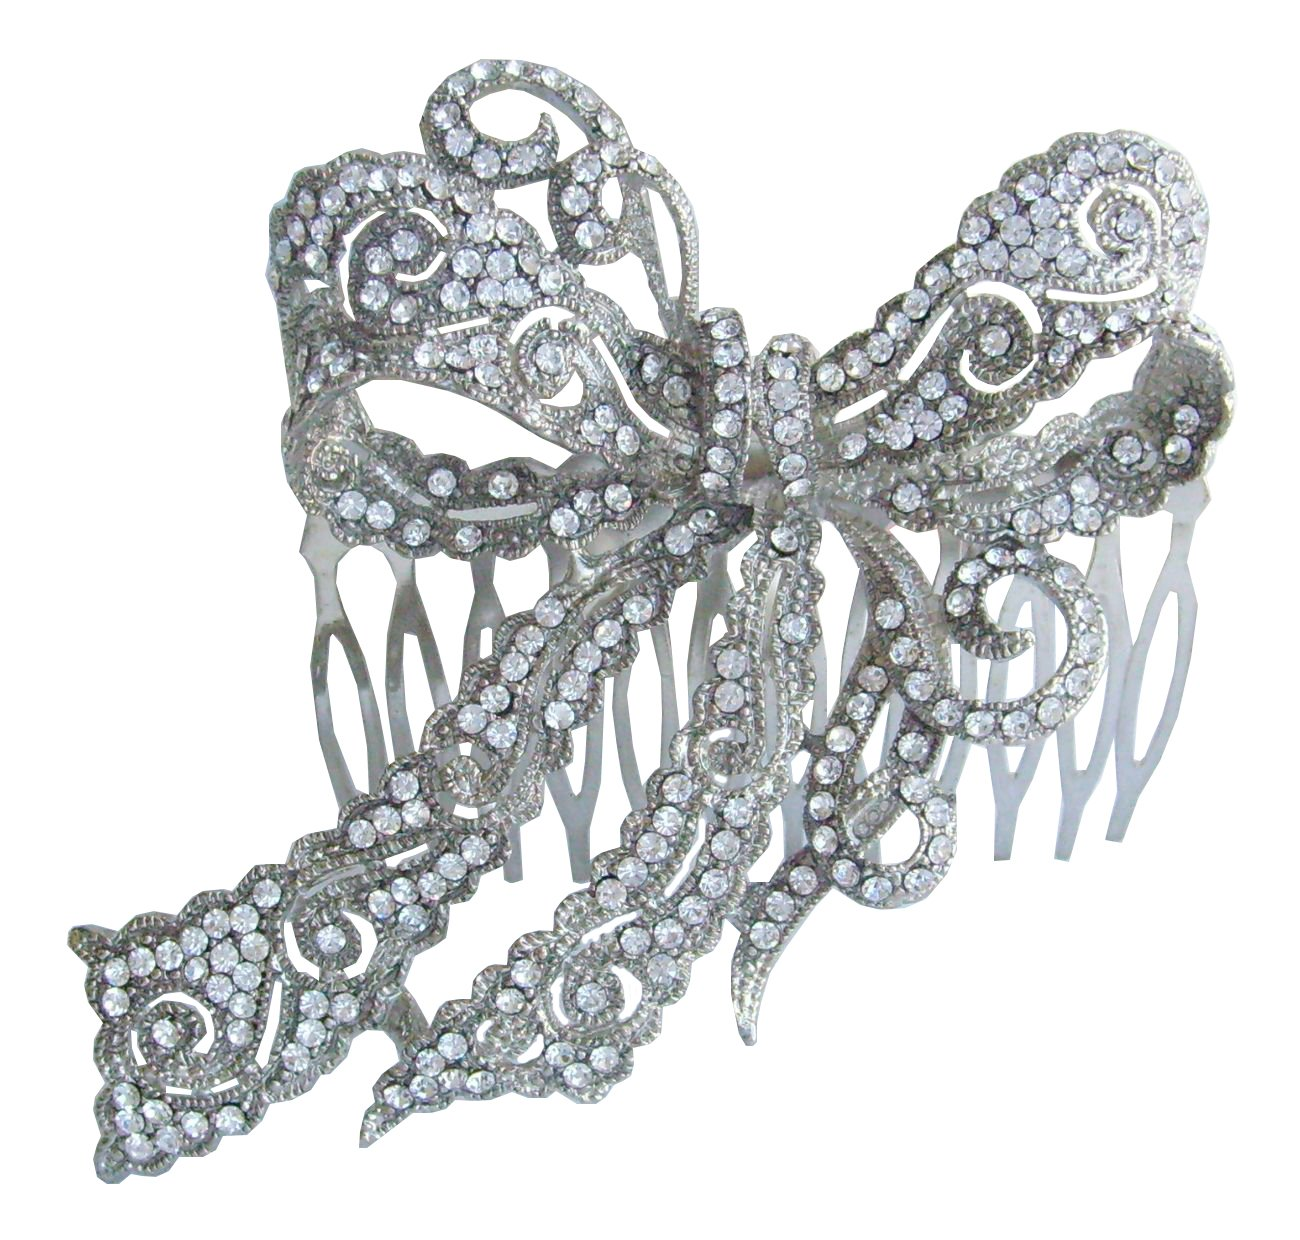 Sindary Wedding Headpiece 4.13 Inch Silver-tone Clear Rhinestone Crystal Bowknot Hair Comb